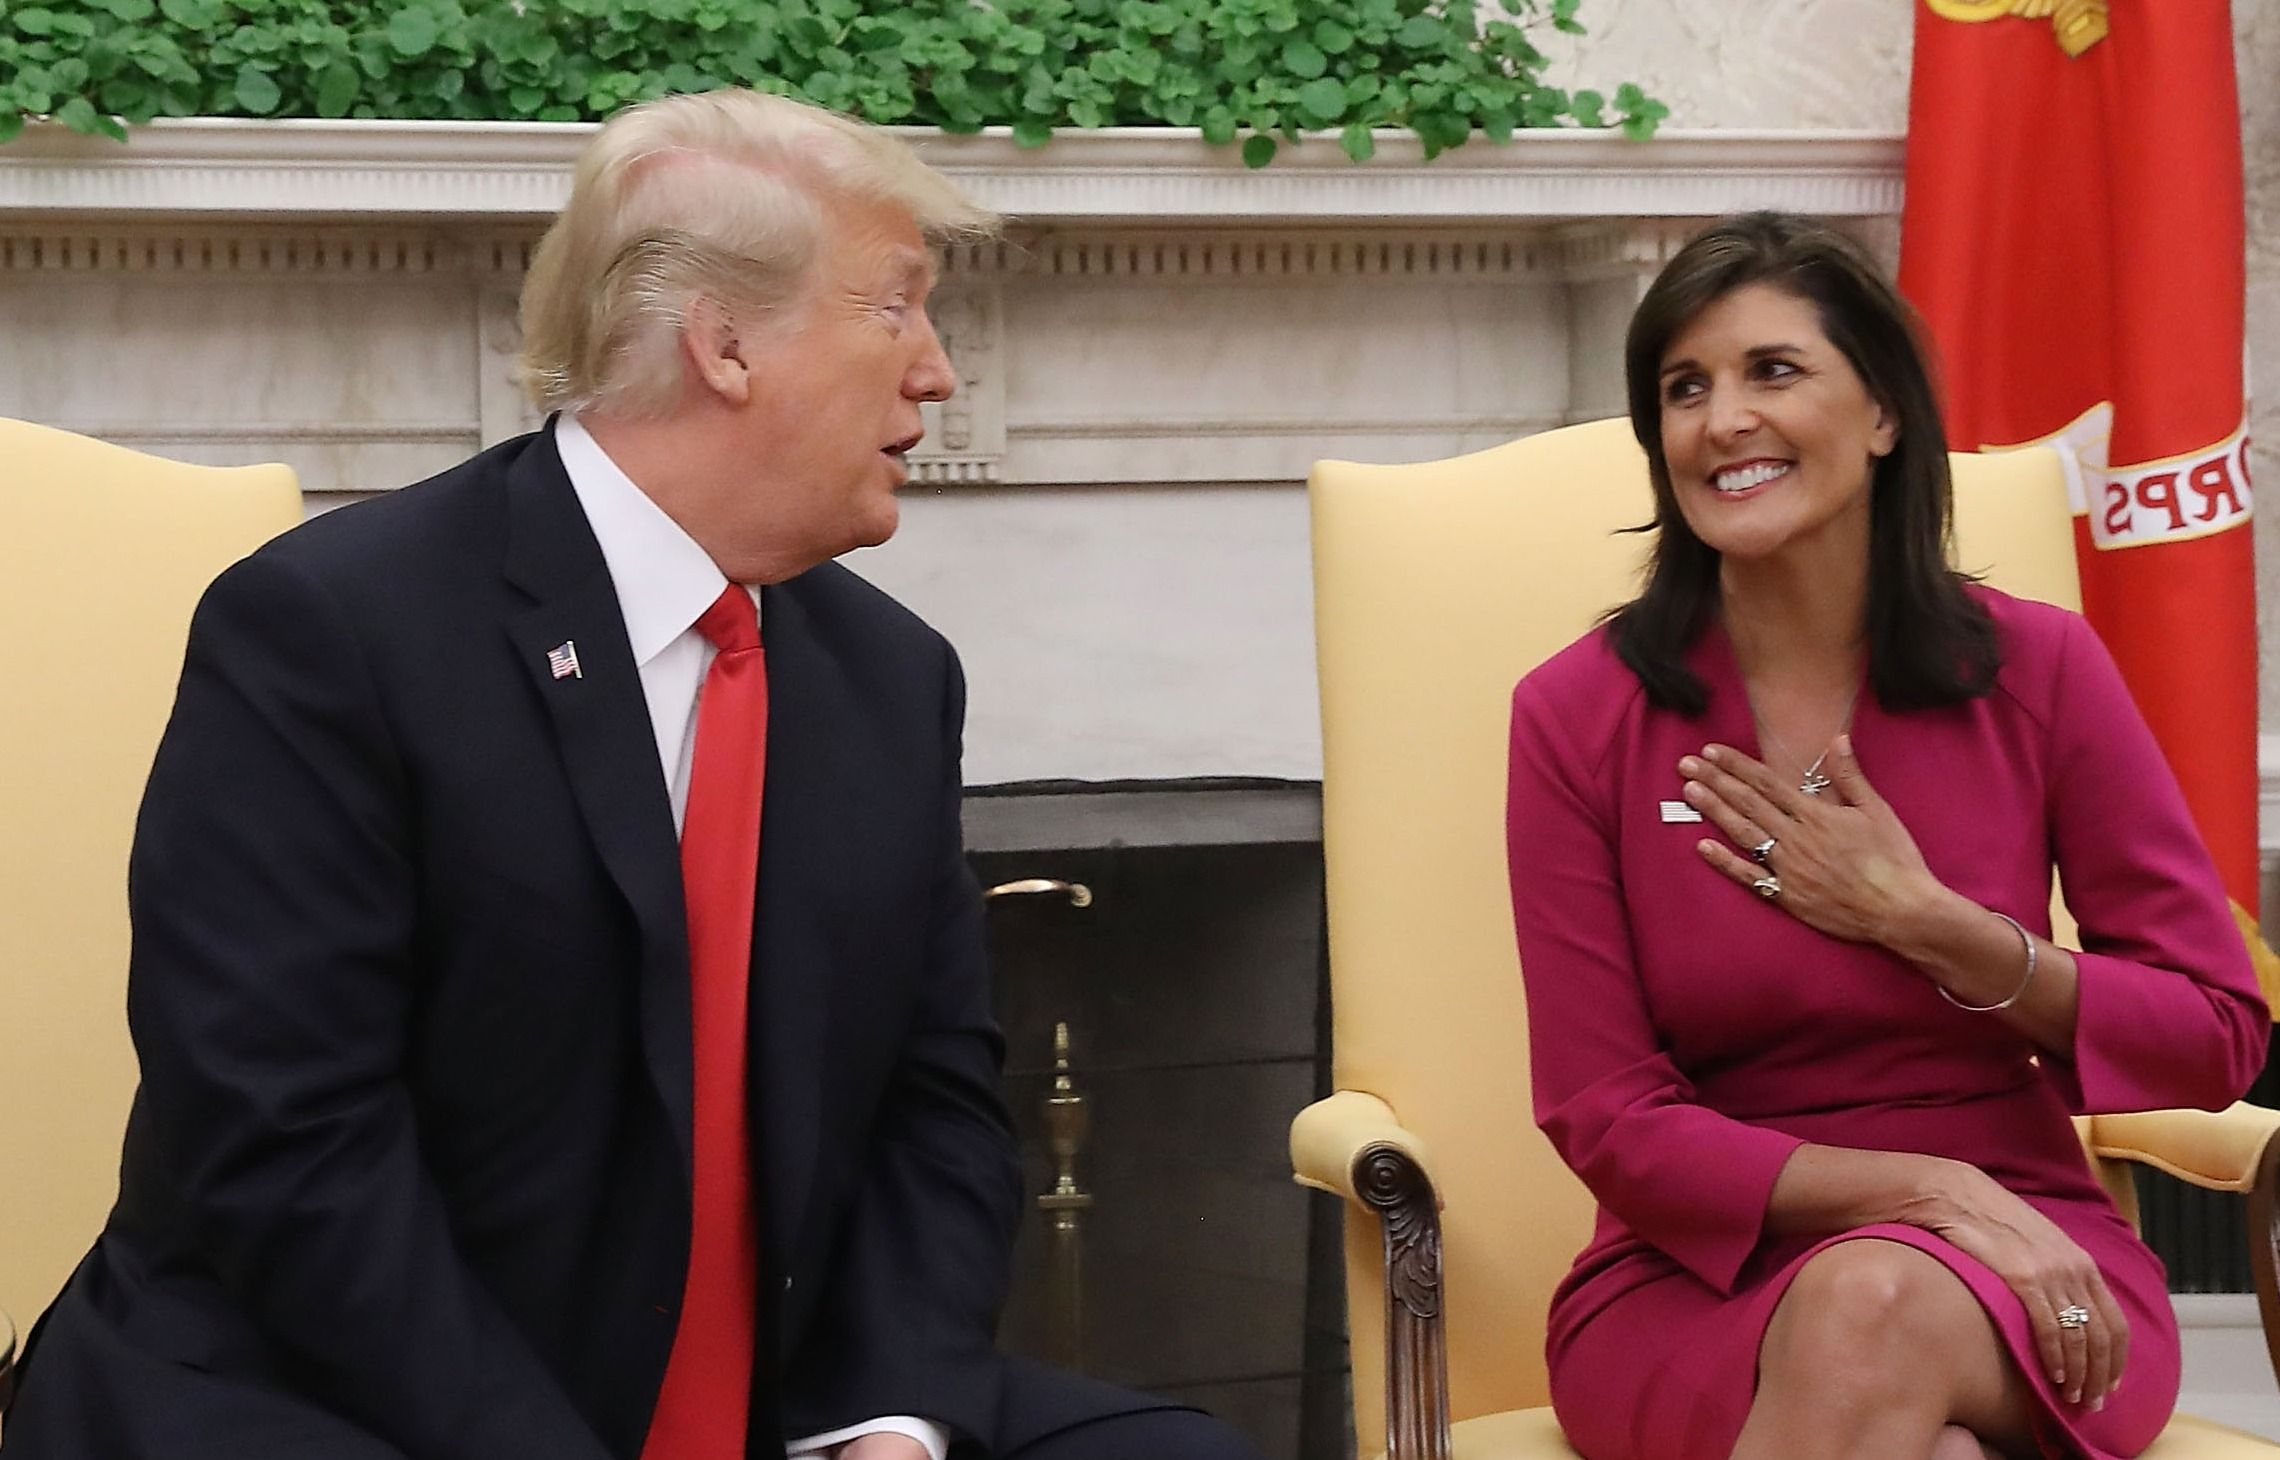 Don't Be Fooled: Nikki Haley Is Just Like Trump